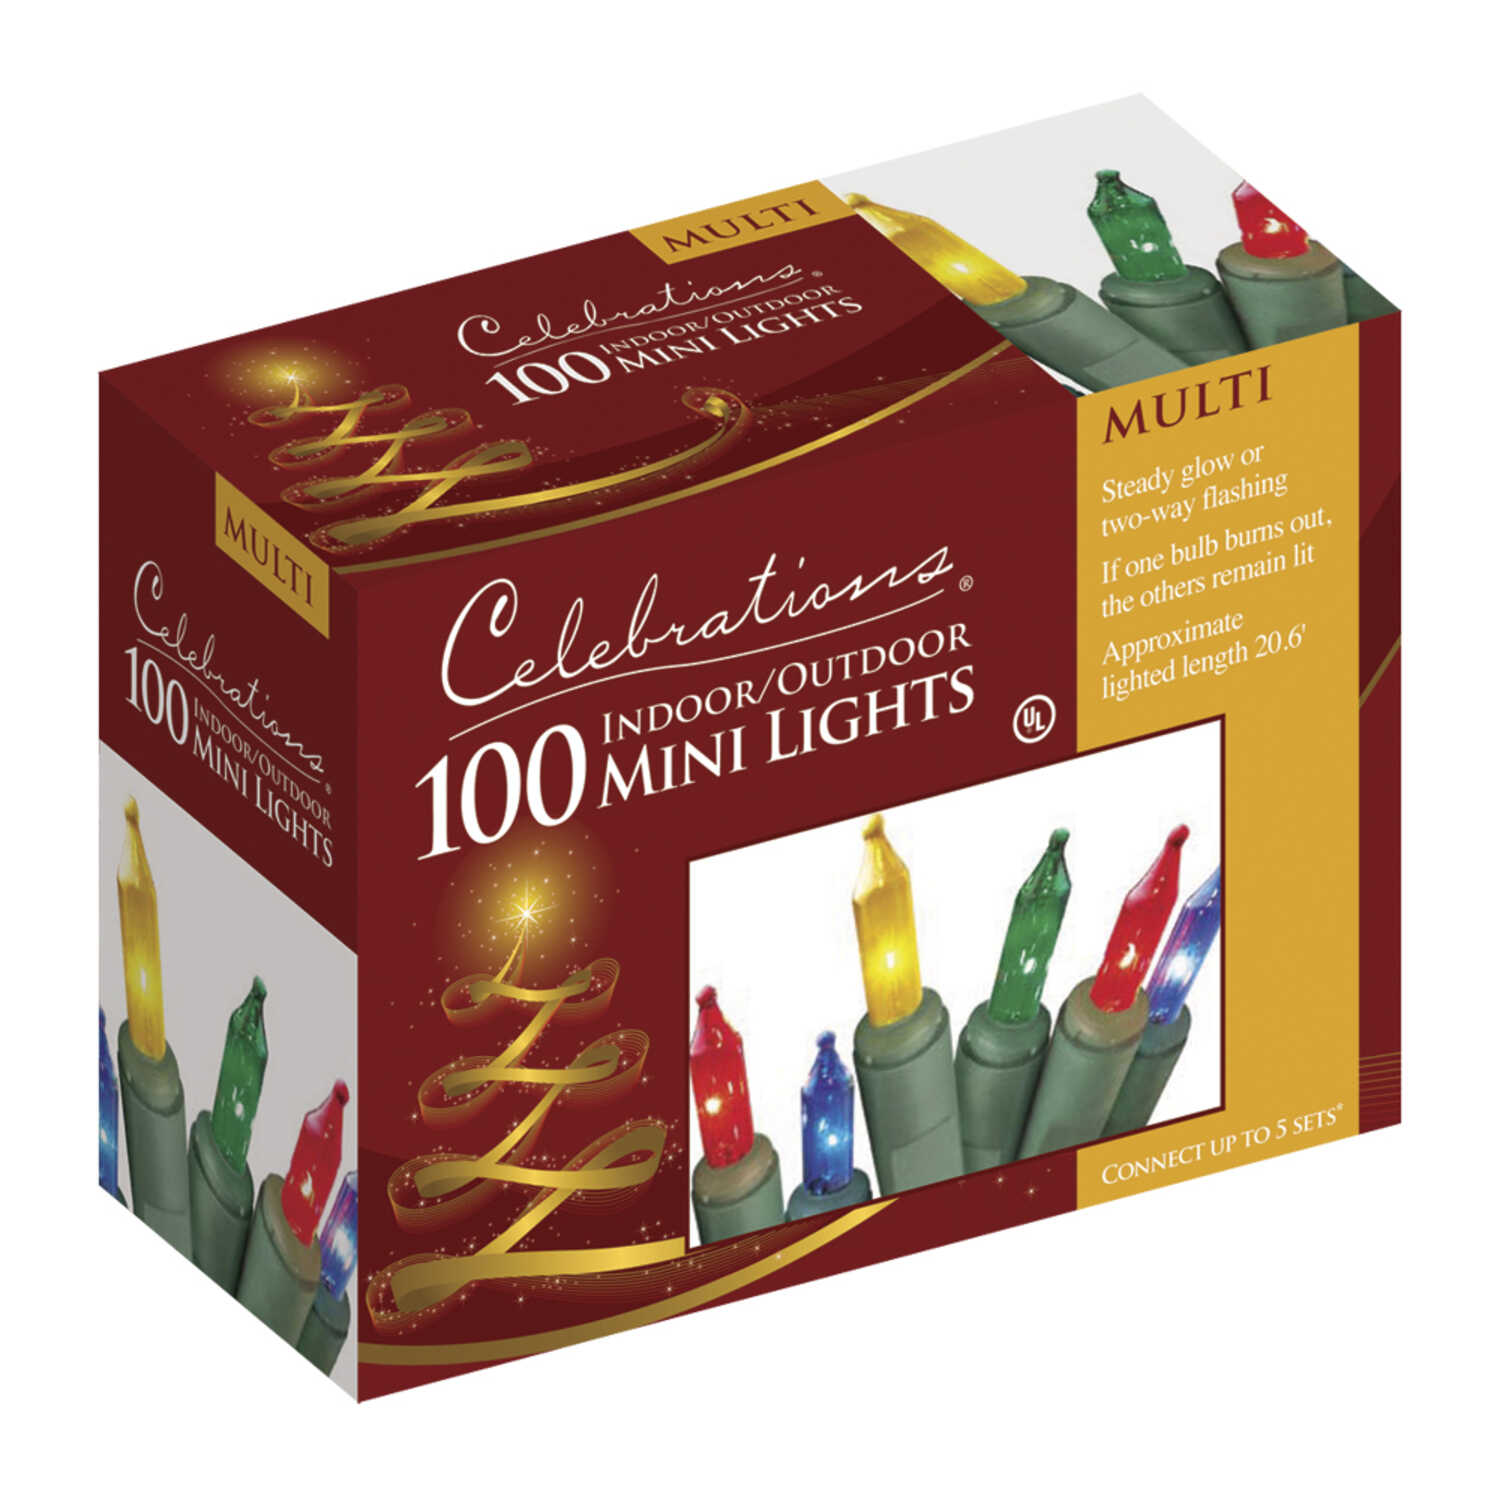 Celebrations  Incandescent  Mini  Light Set  Multicolored  20 ft. 100 lights